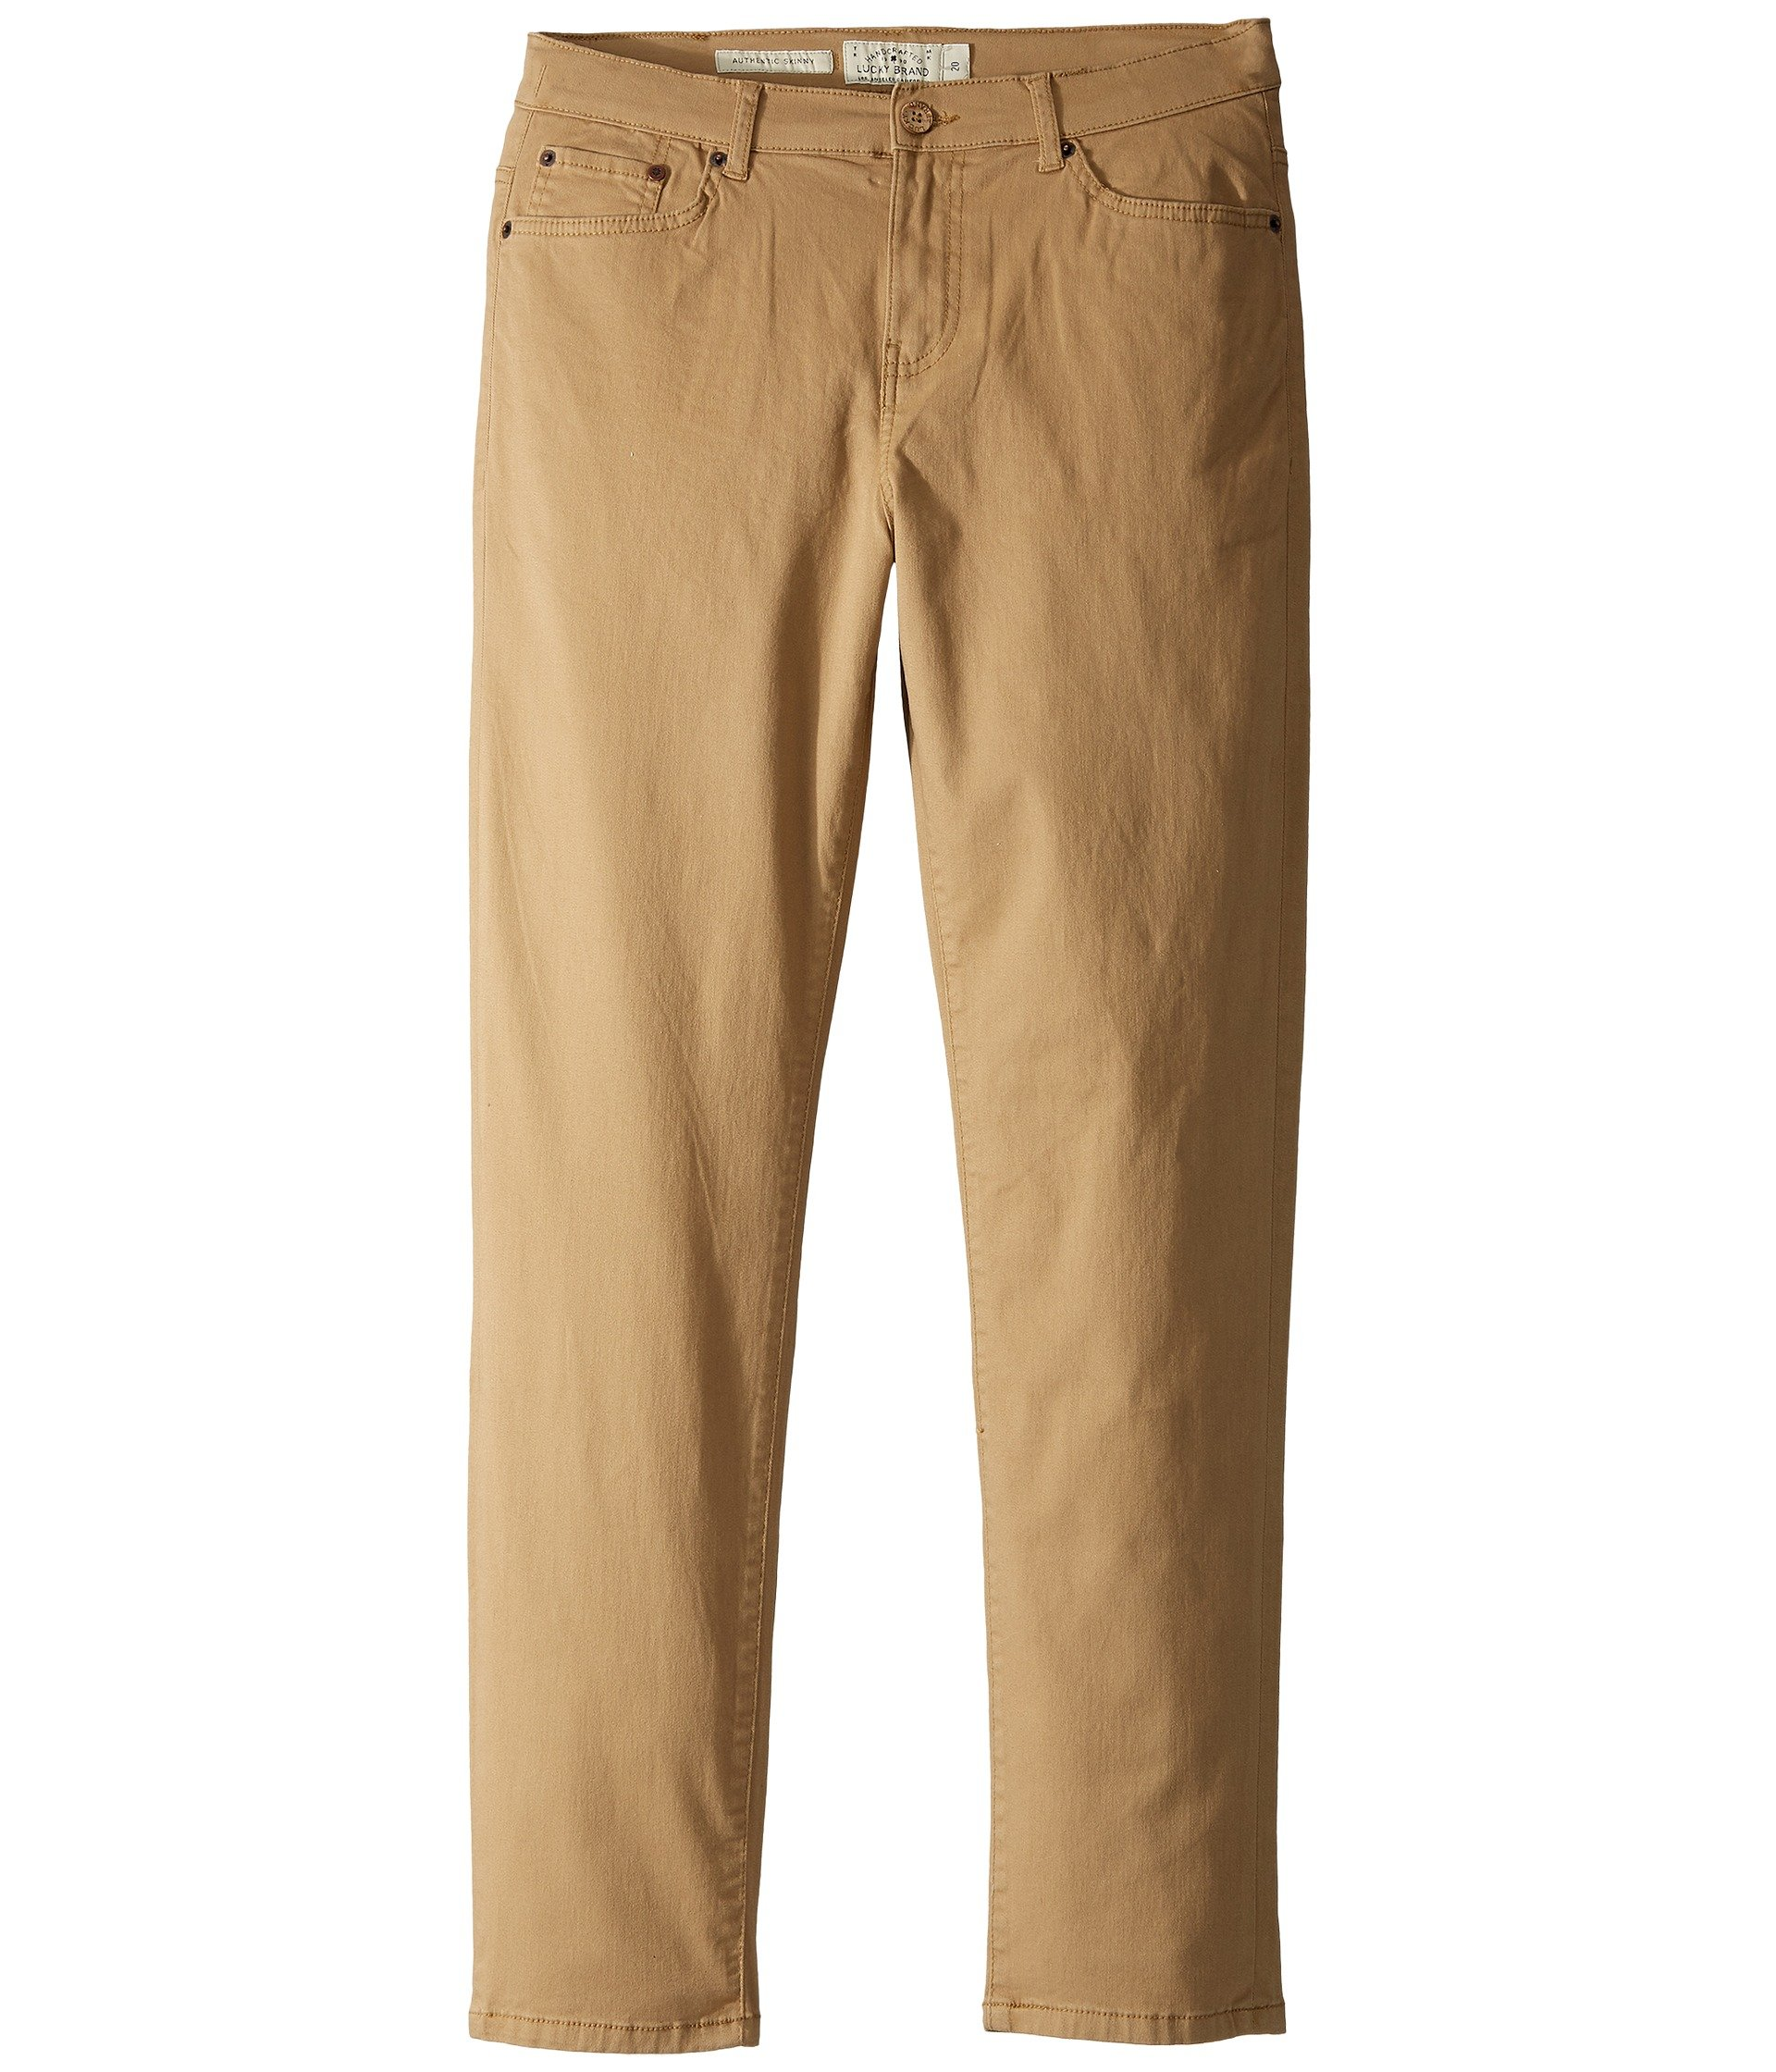 Lucky Brand Big Boys' Five Pocket Stretch Twill Pant, Kelp, 20